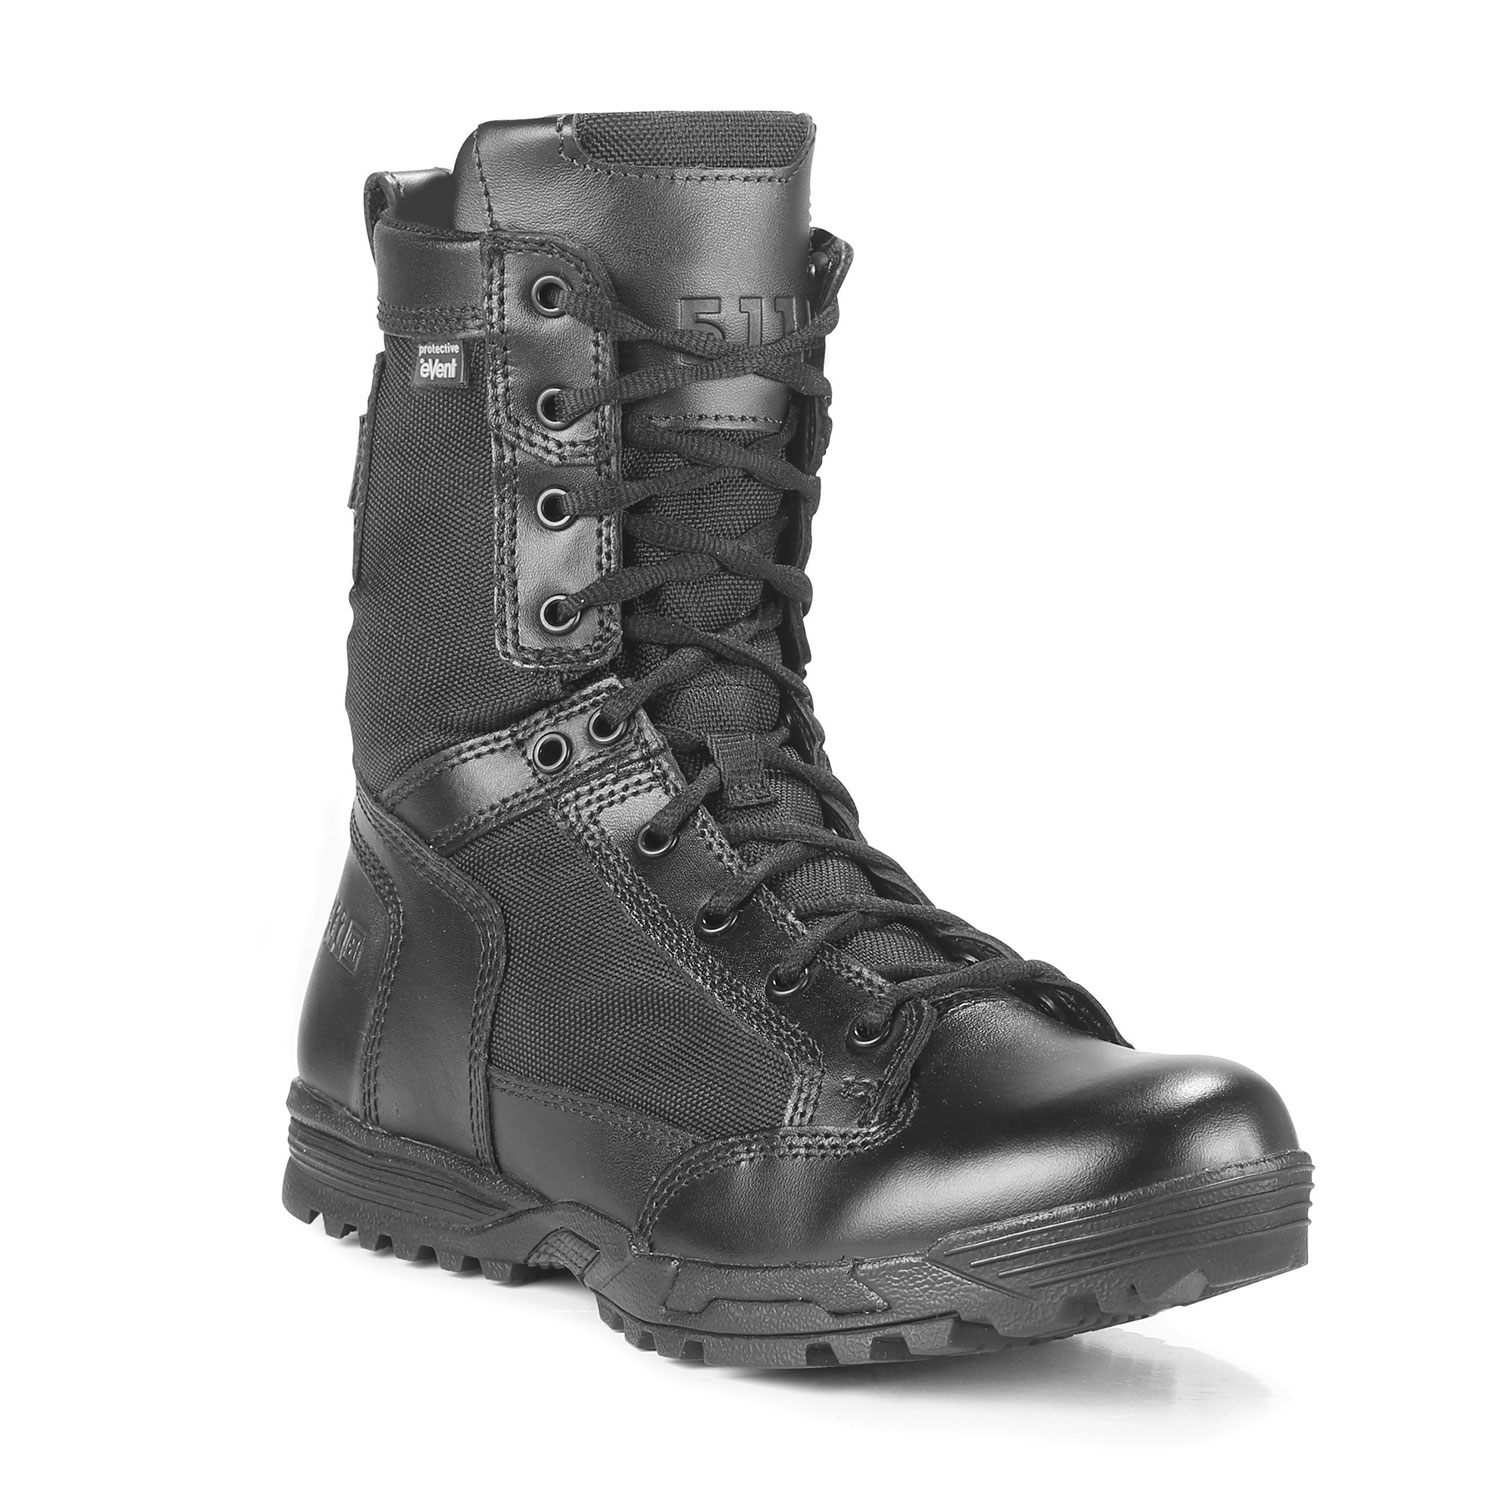 "5.11 Tactical 8"" Skyweight Side Zip Waterproof Boot"